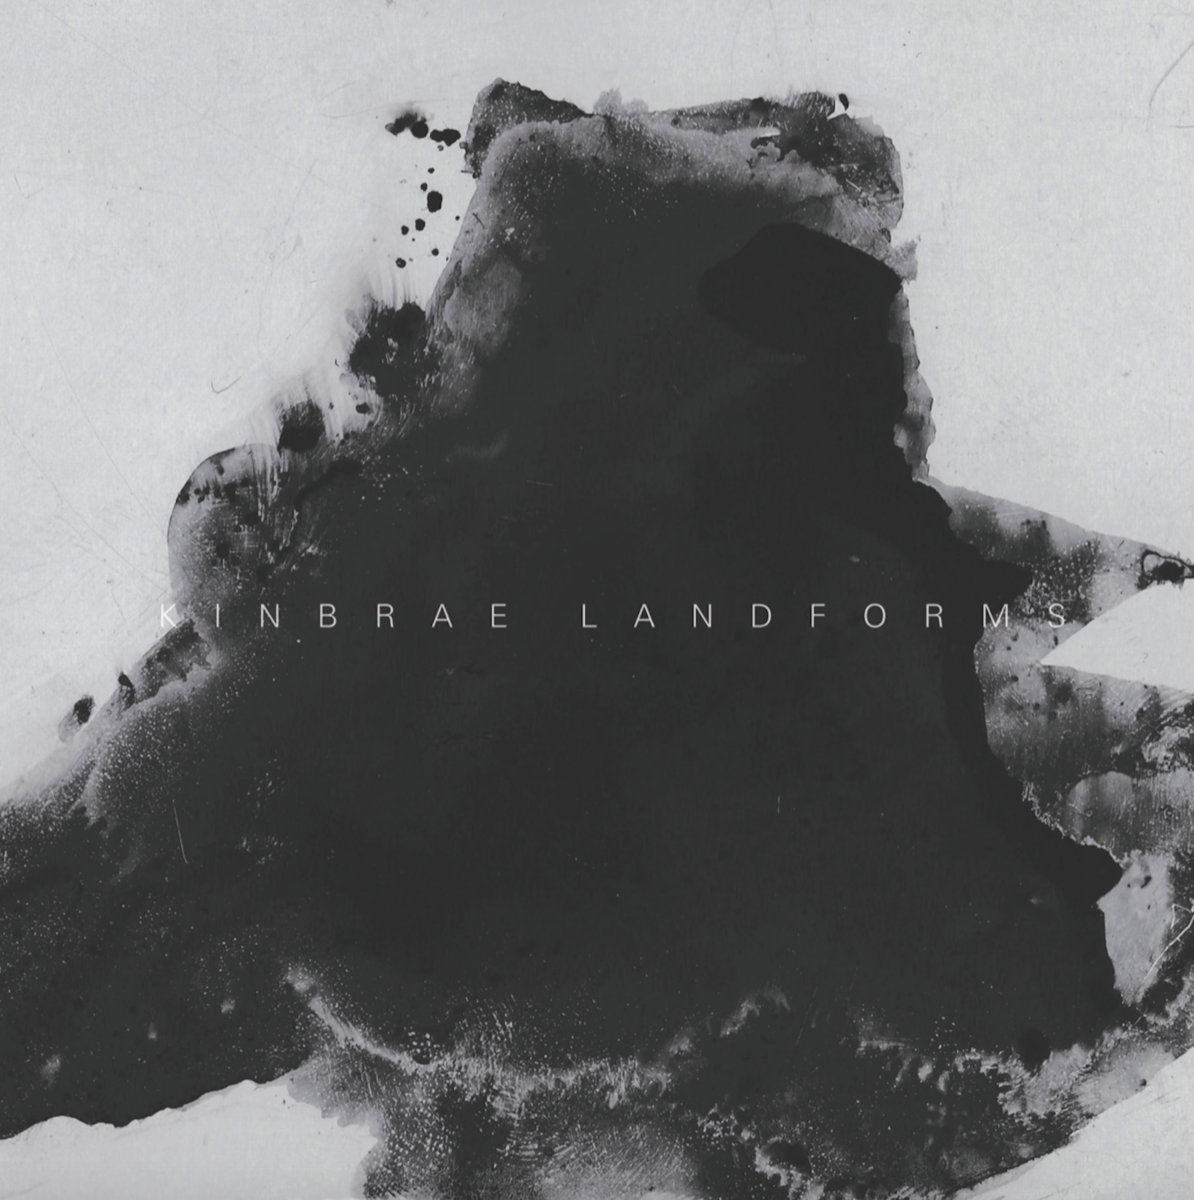 KINBRAE - LANDFORMS: Recording / Production / Mixing